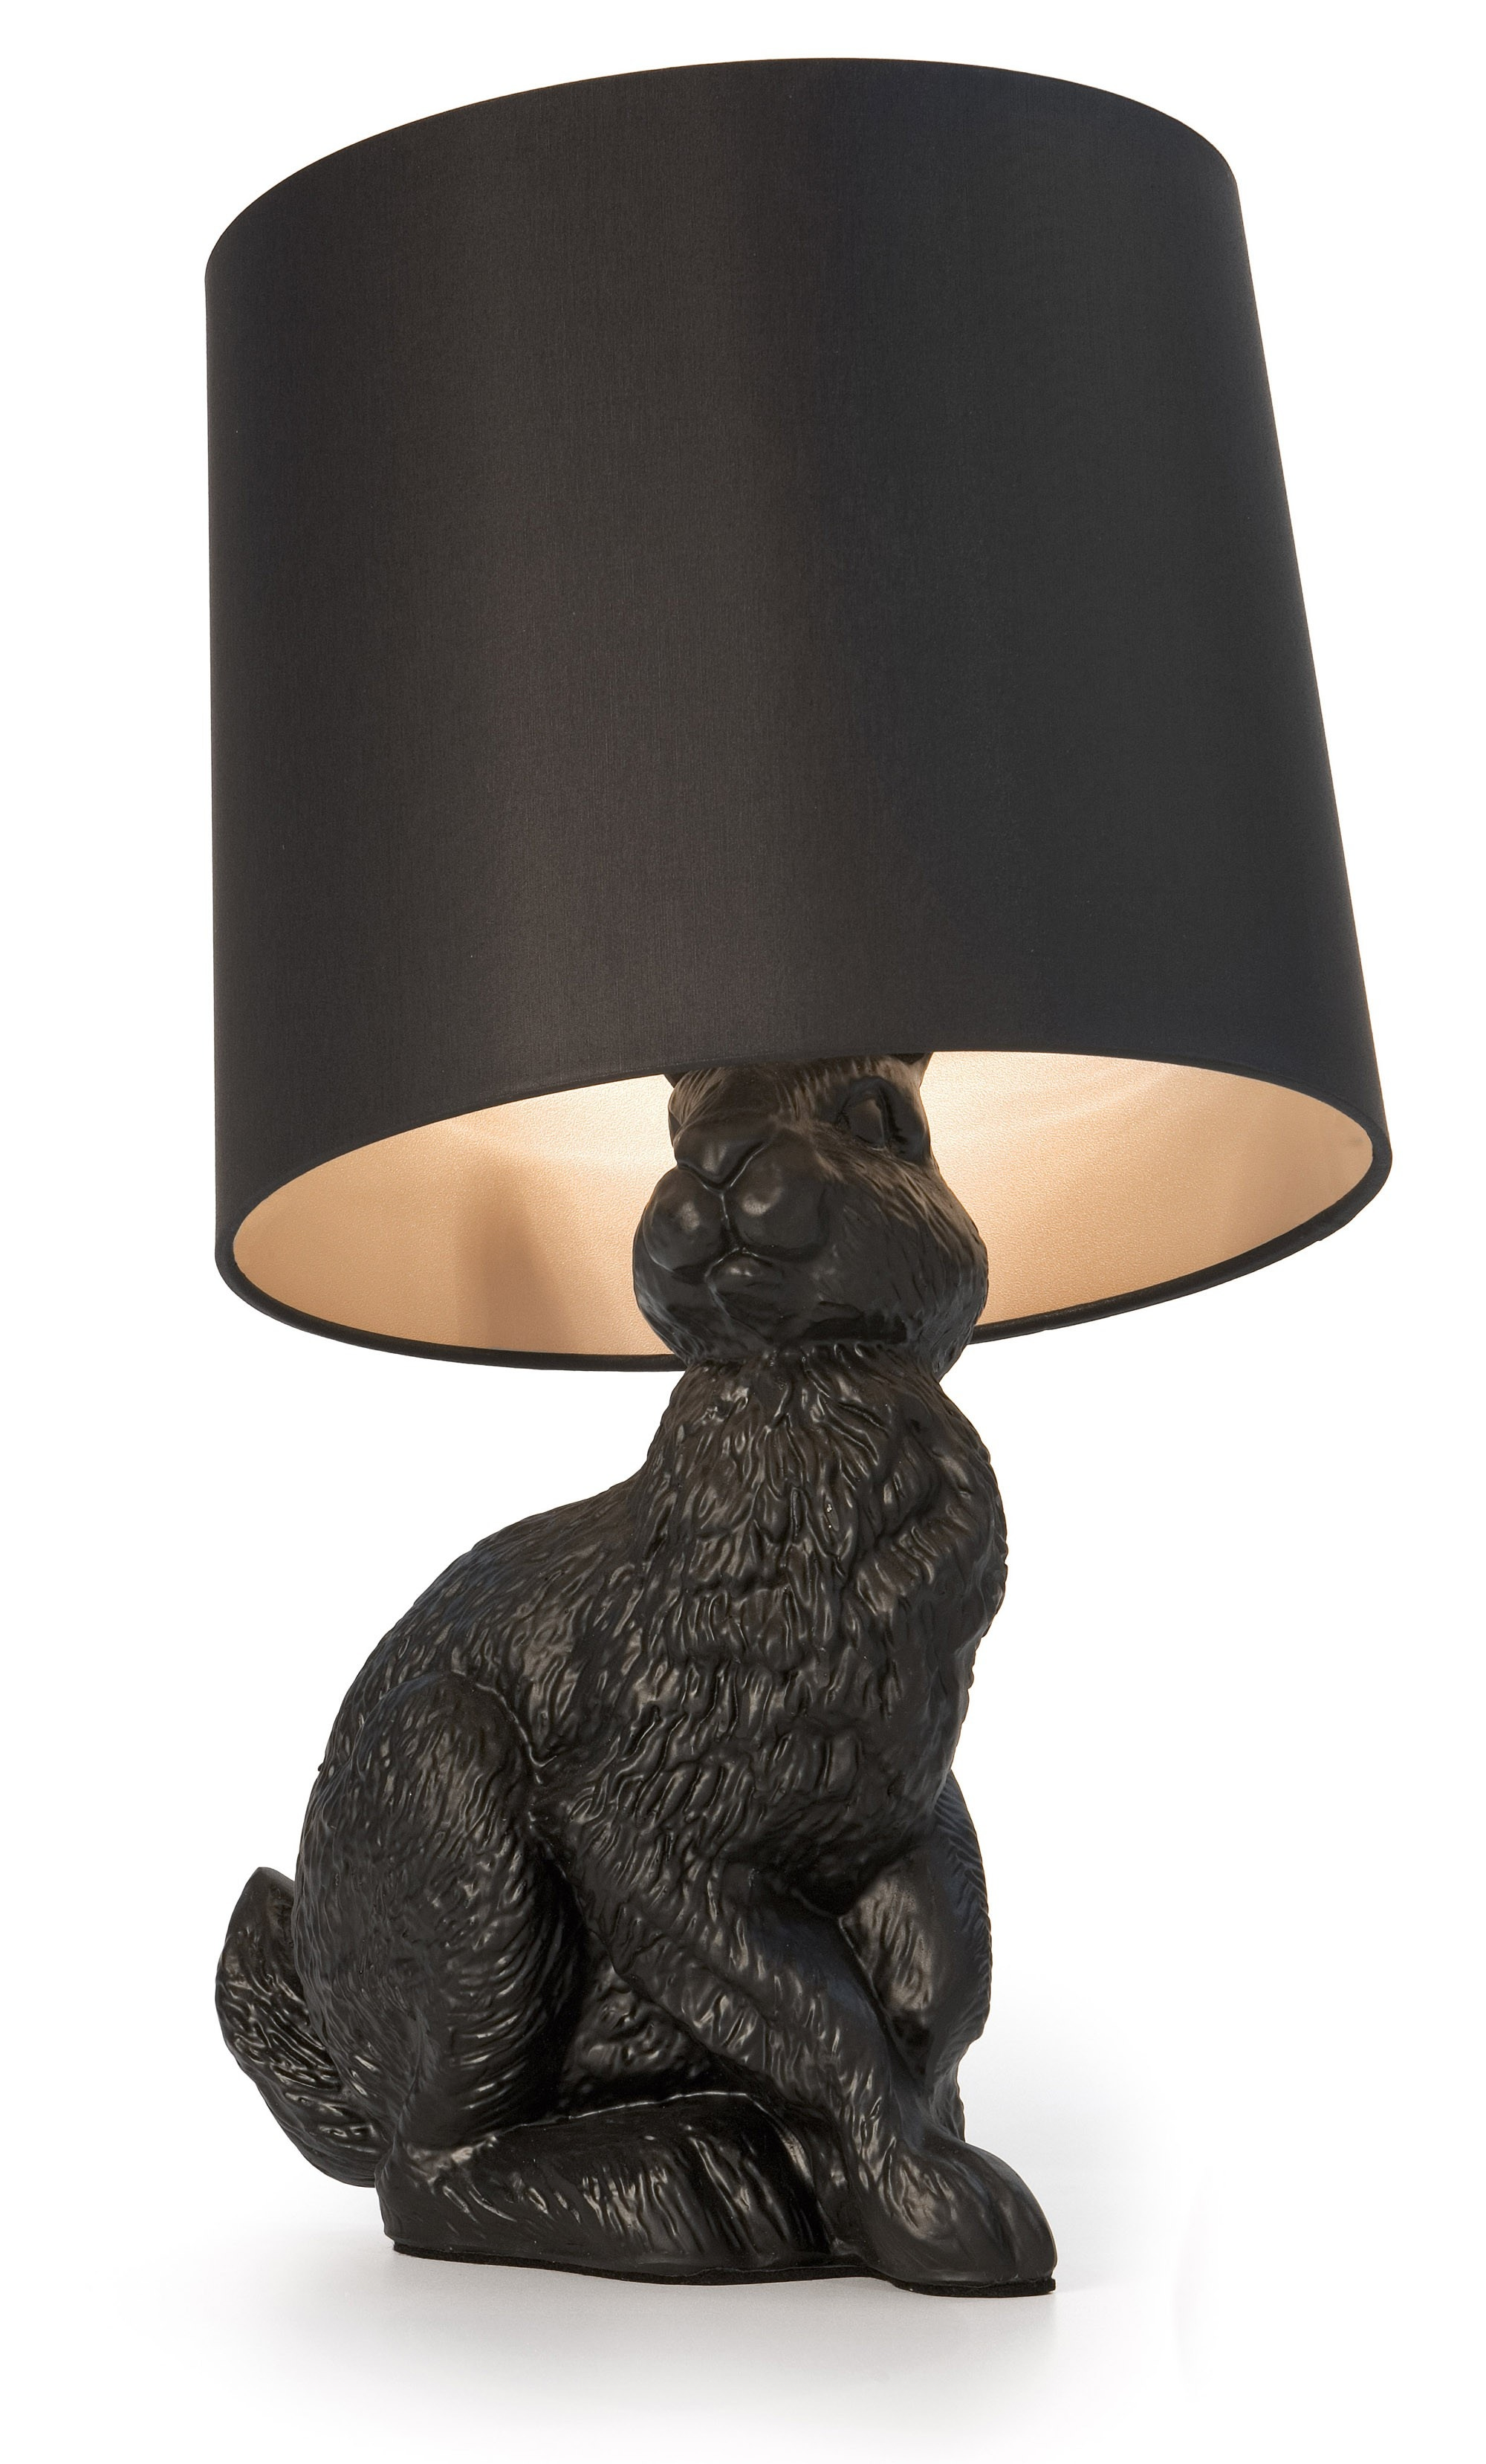 Moooi rabbit table lamp gr shop canada moooi rabbit table lamp aloadofball Image collections